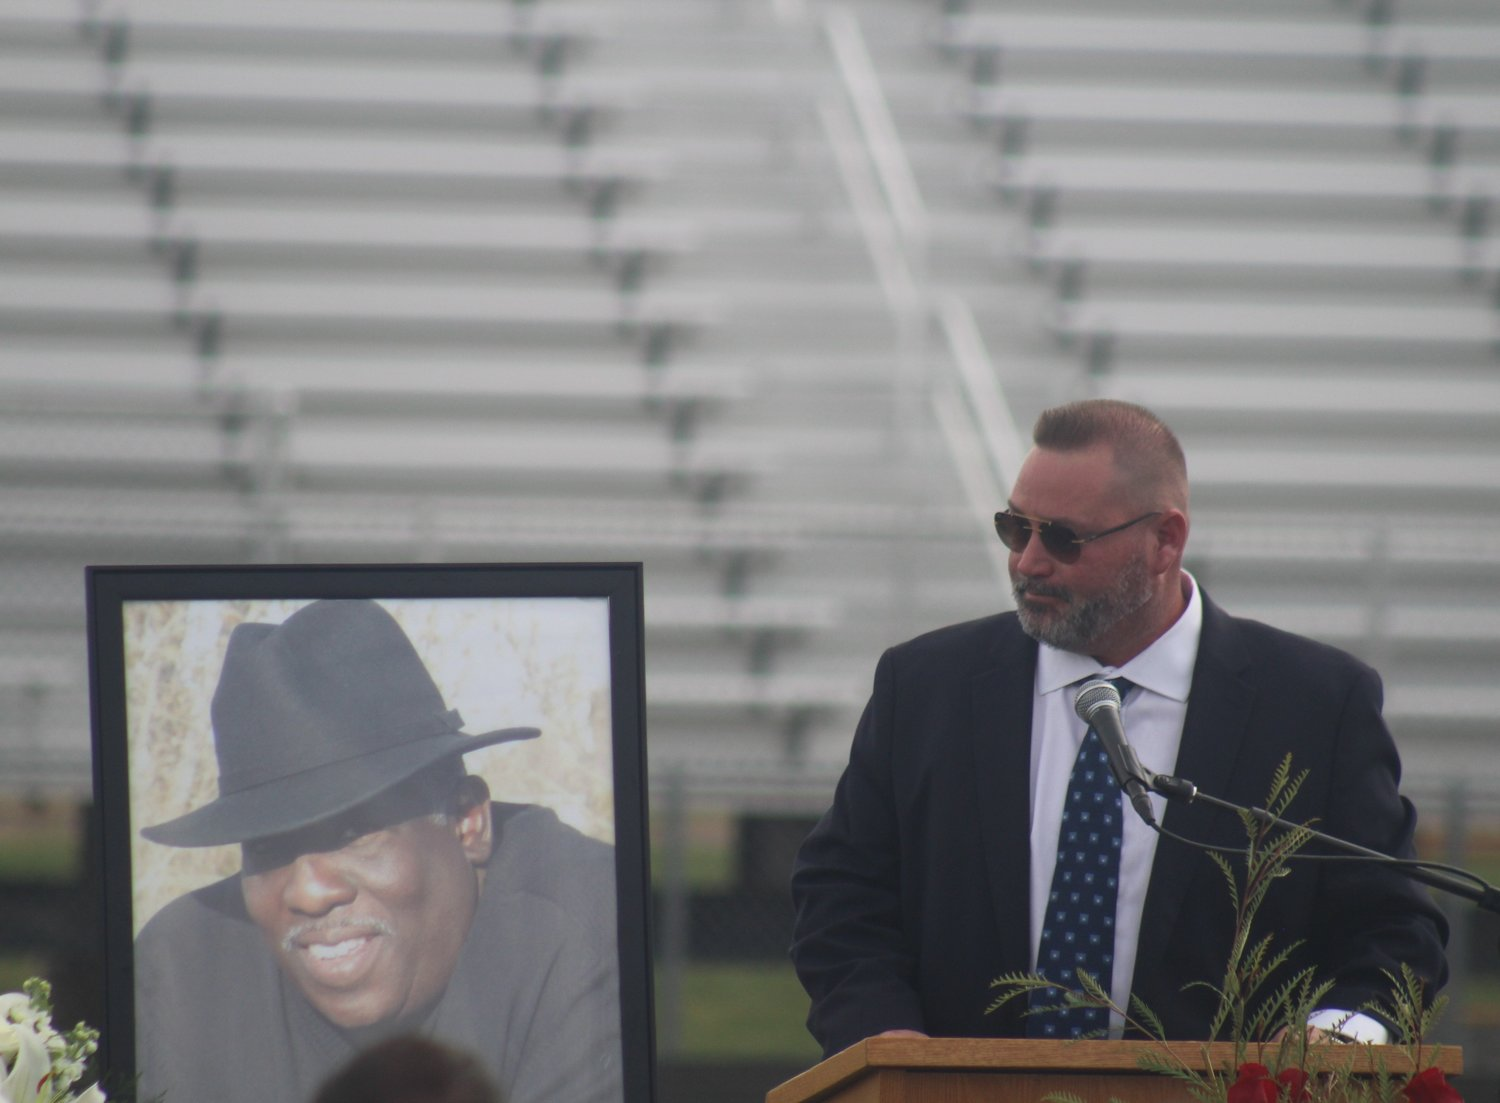 Prairie View High School softball and baseball coach Mark Gonzales remembers his friend and mentor, Nate Thomas, during a celebration of life at PVHS Oct. 8. Howard died late last month.